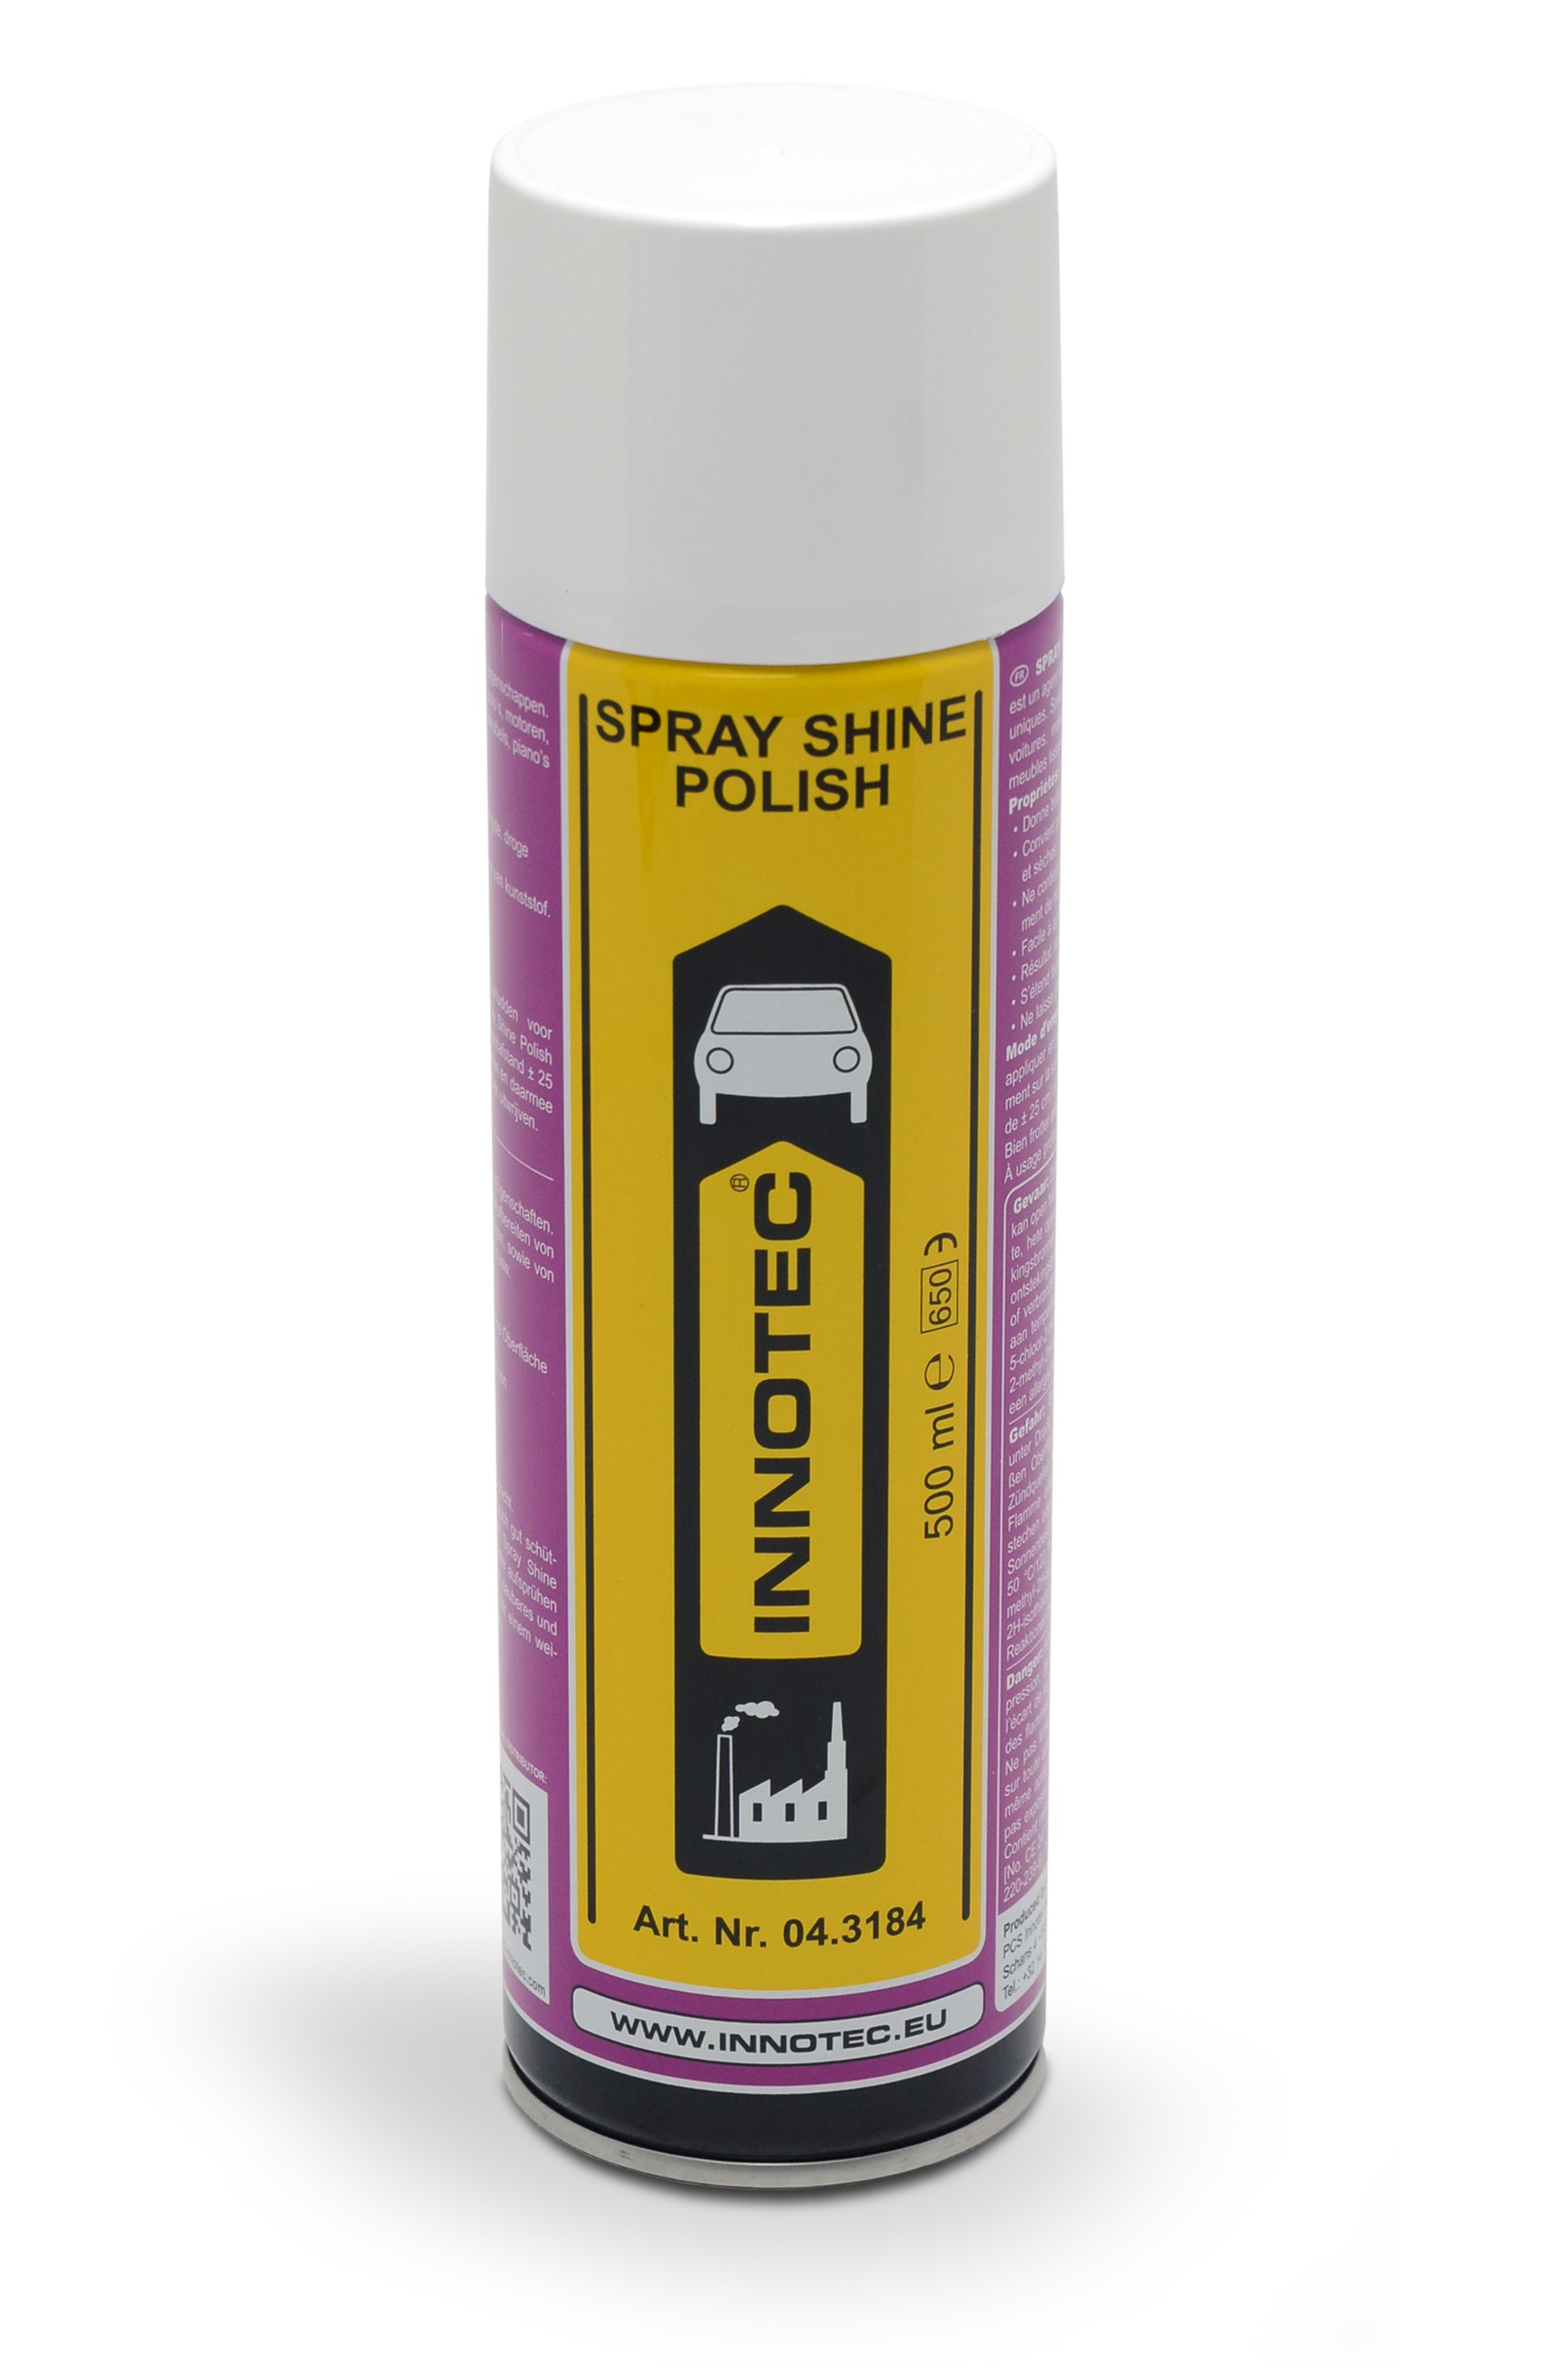 1328_Spray Shine Polish.jpg